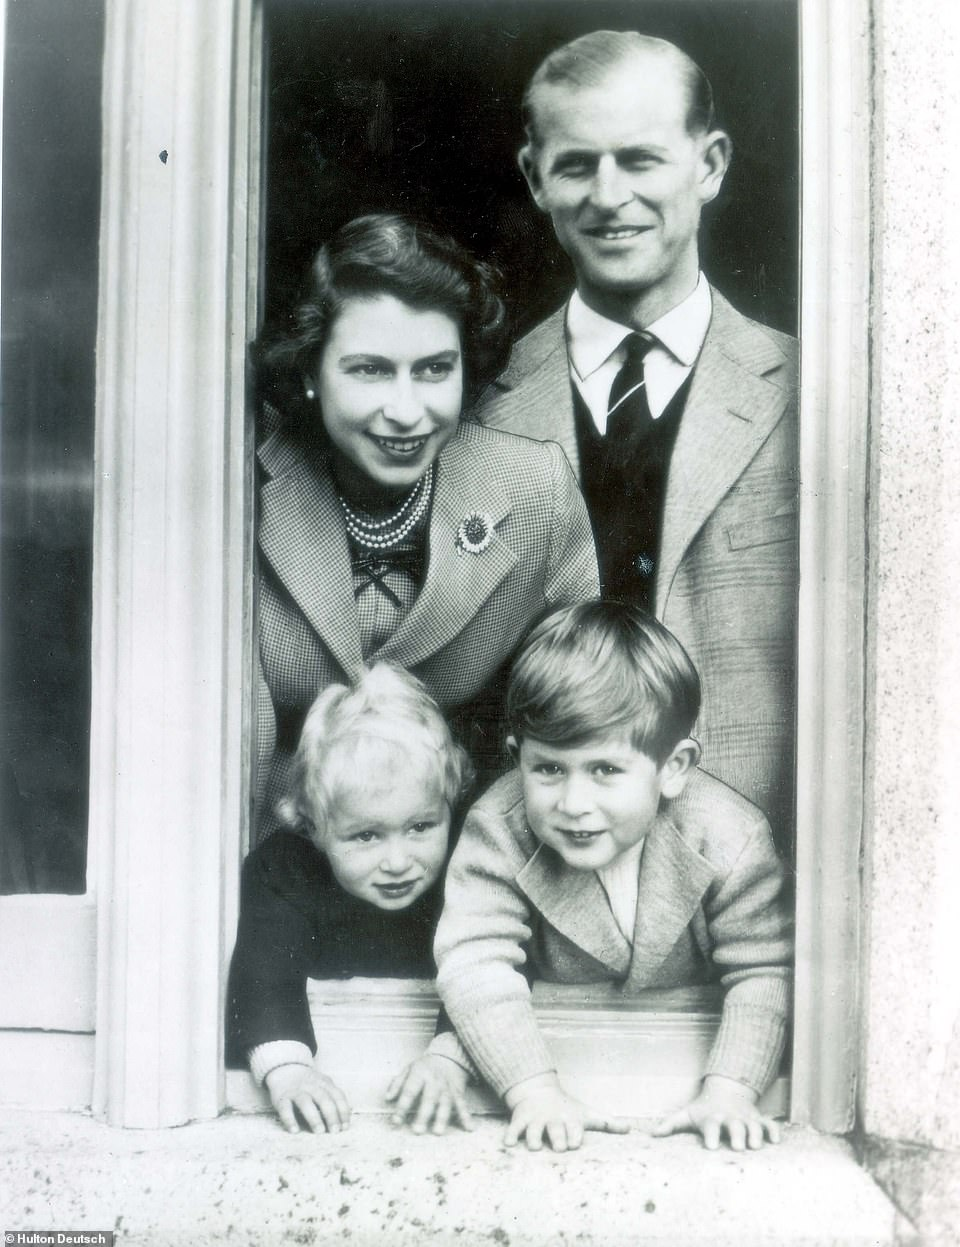 Queen Elizabeth II with Prince Philip, Prince Charles and Princess Anne at Balmoral in September 1952